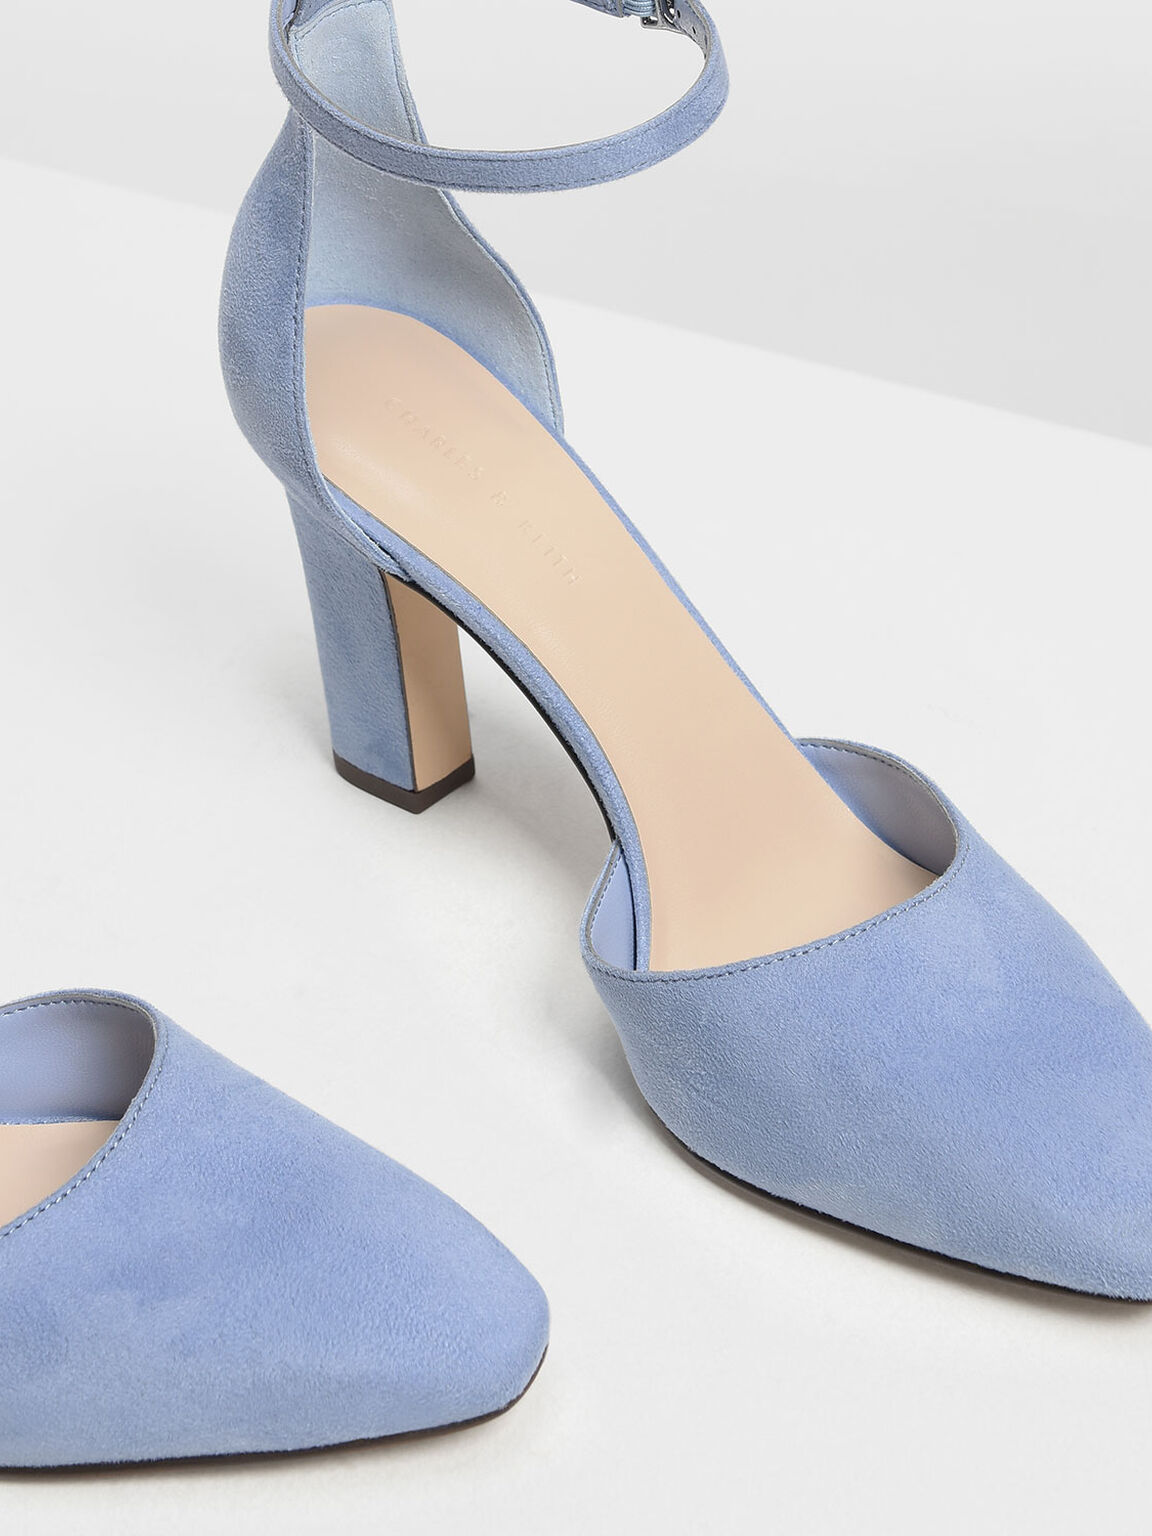 D'Orsay Ankle Strap Pumps, Light Blue, hi-res